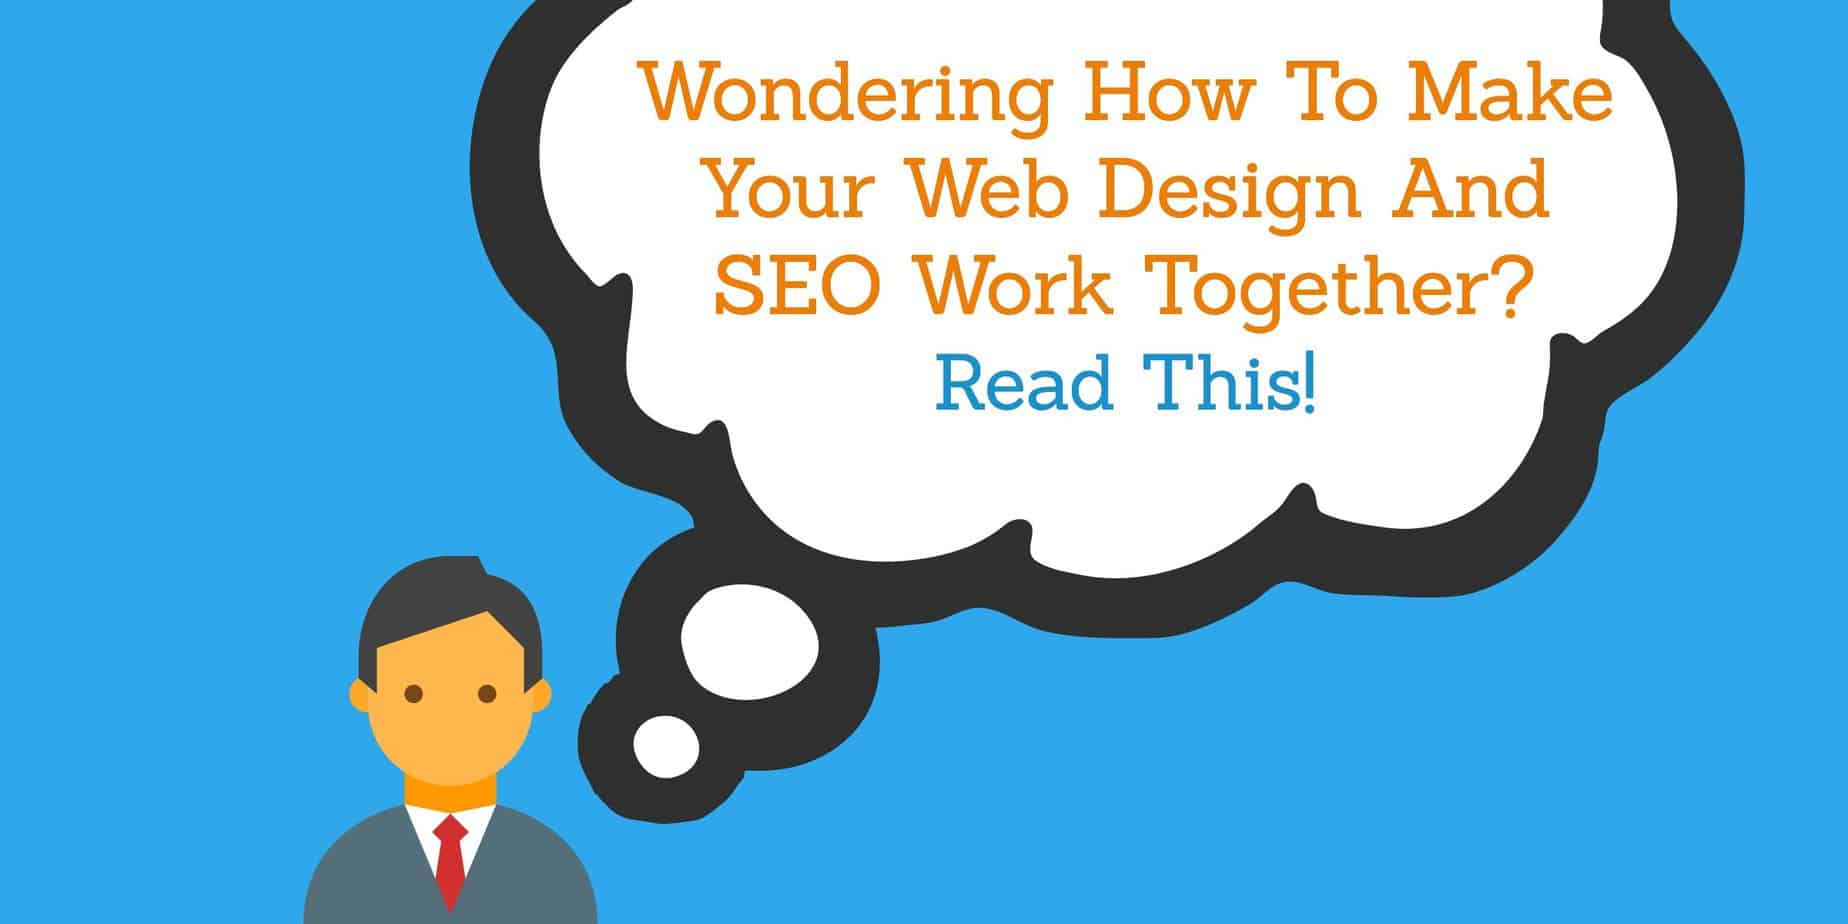 SEO and Web Design Work Together